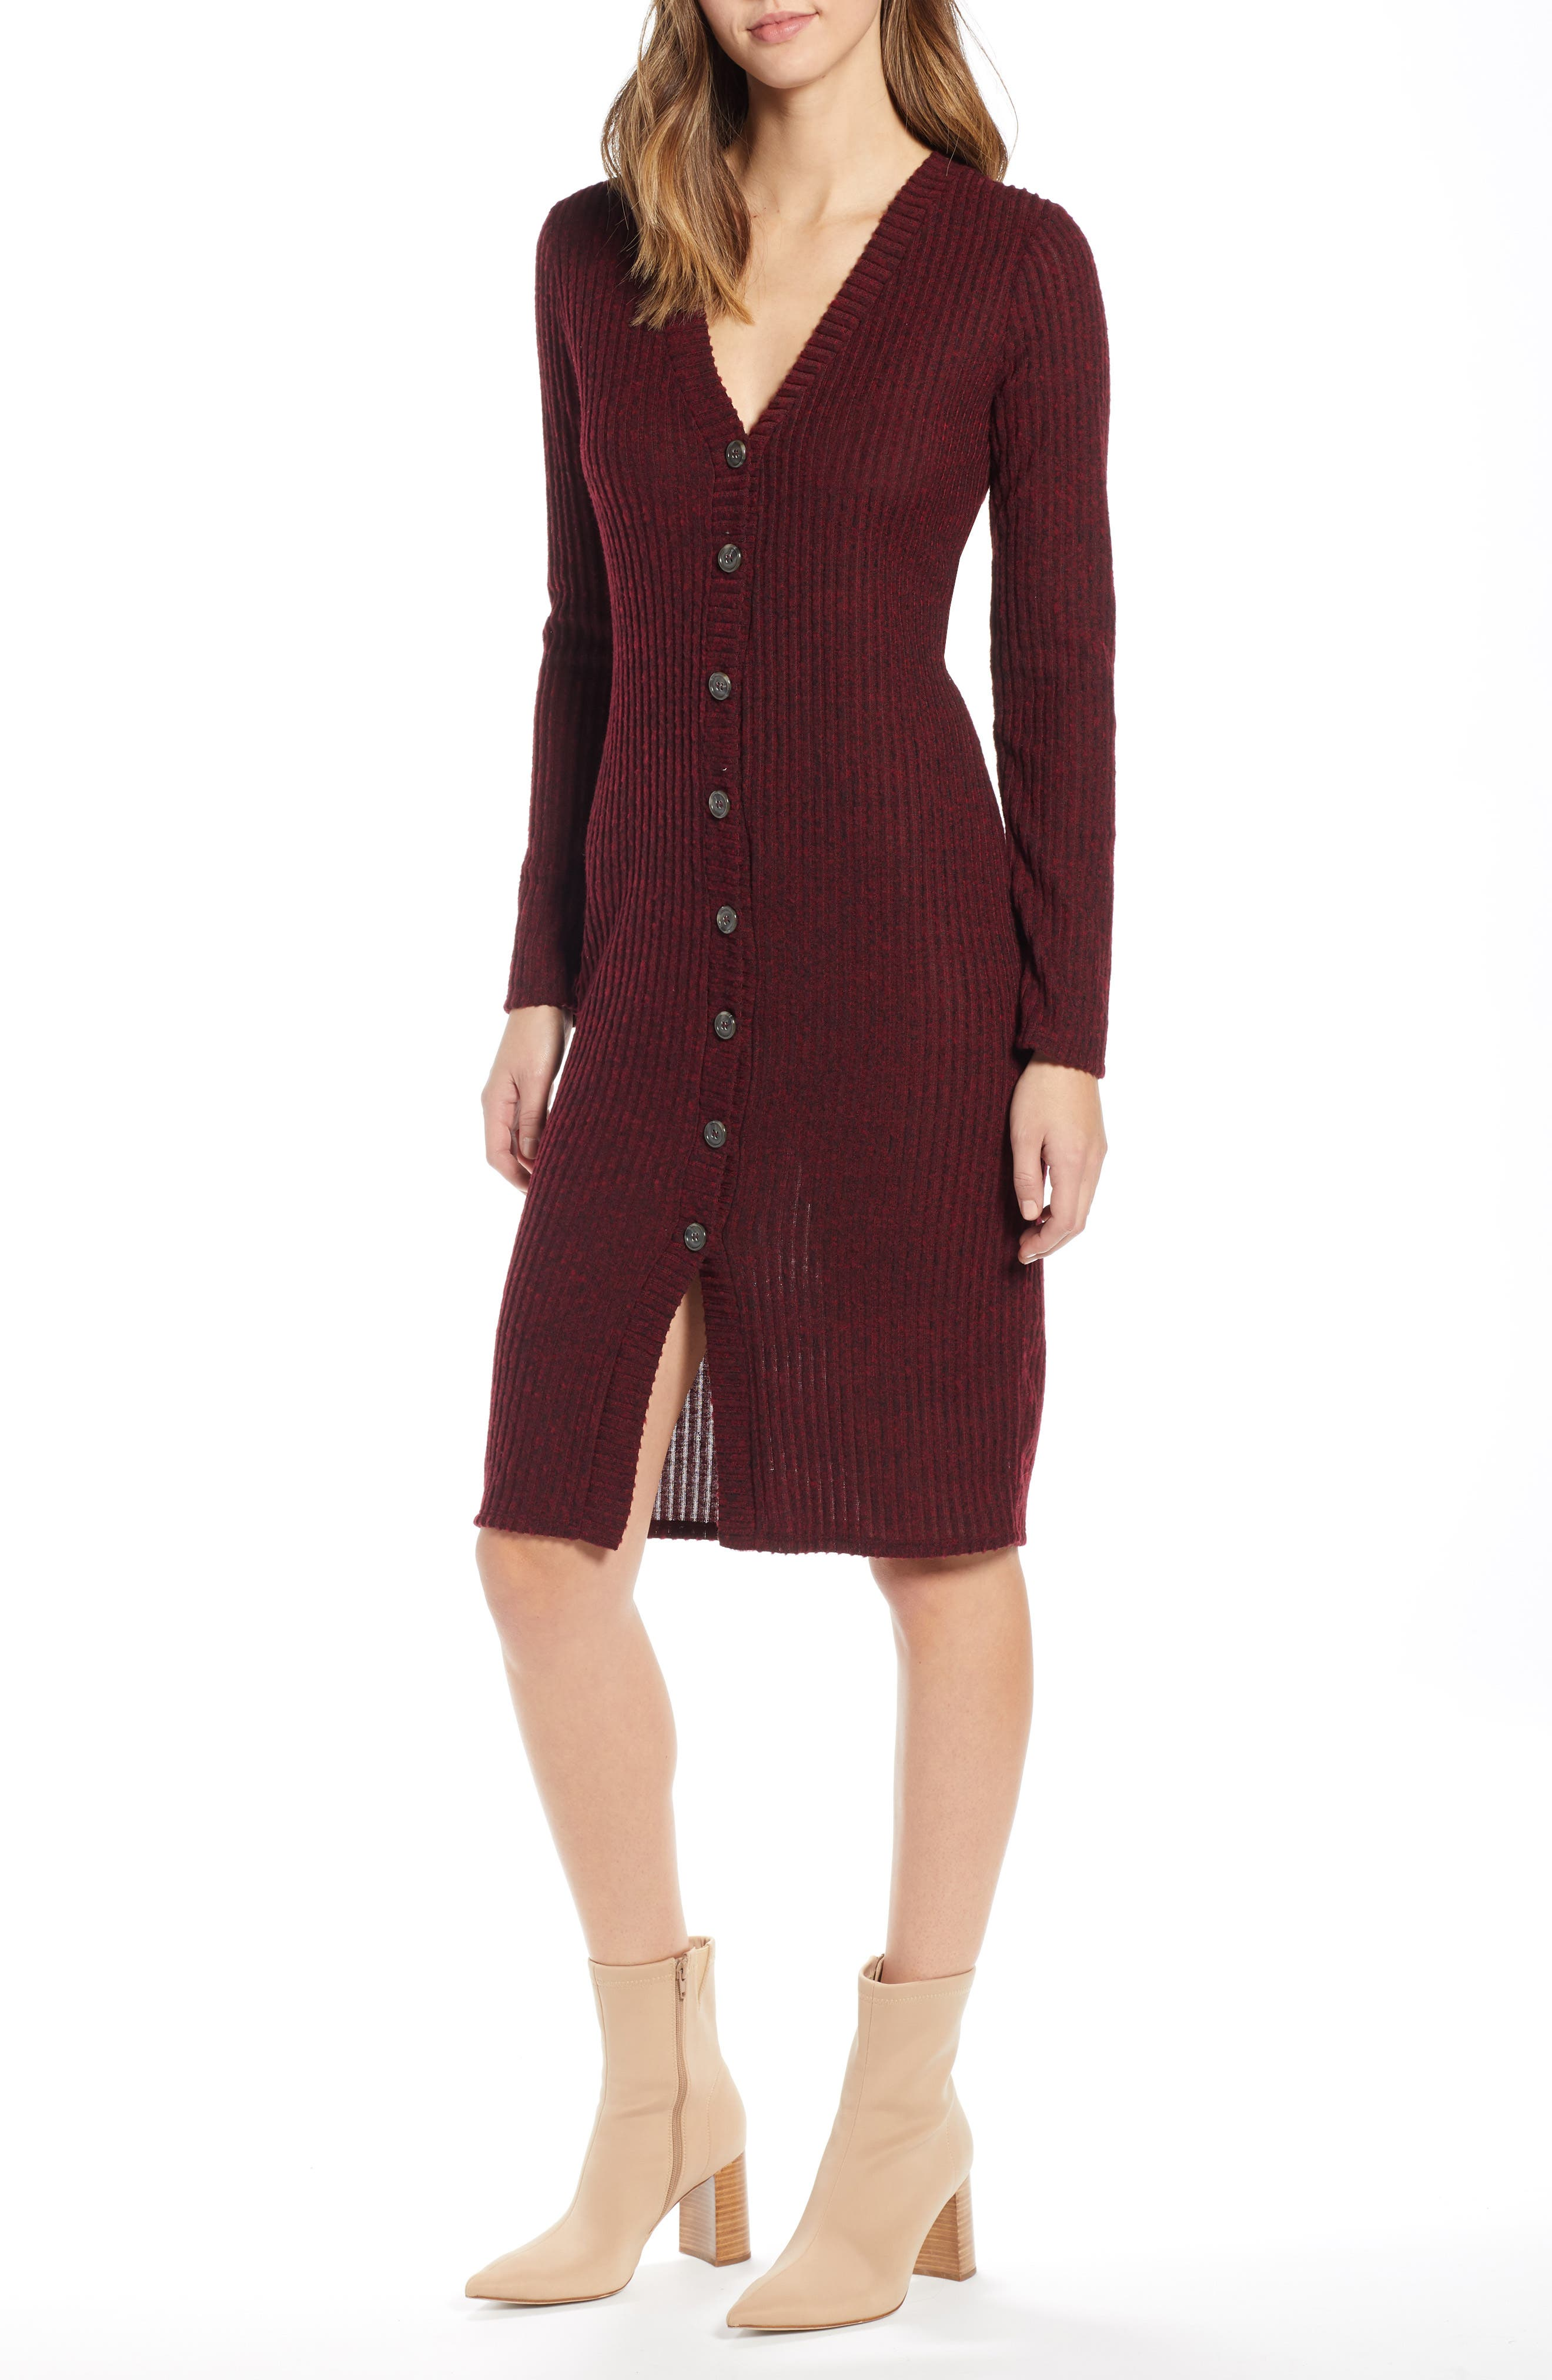 Socialite Sweater Dress, Burgundy